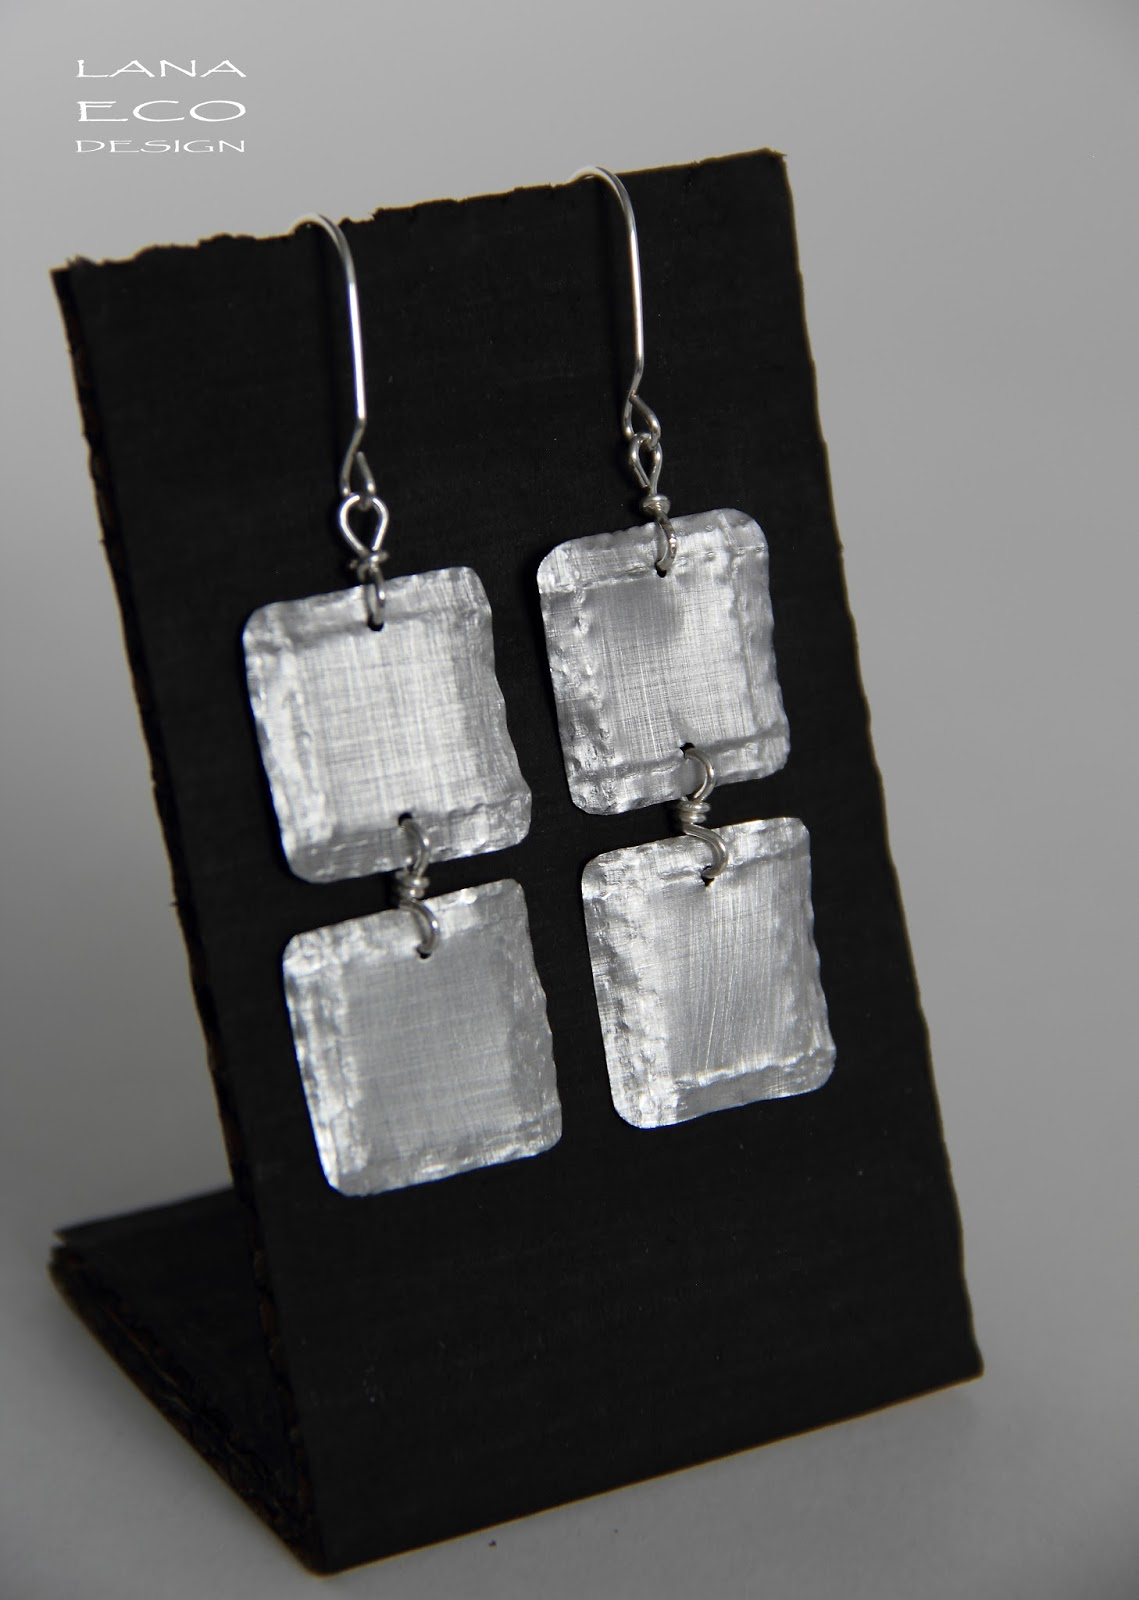 design-handmade-fatto-amano-ecosostenibile-eco-friendly